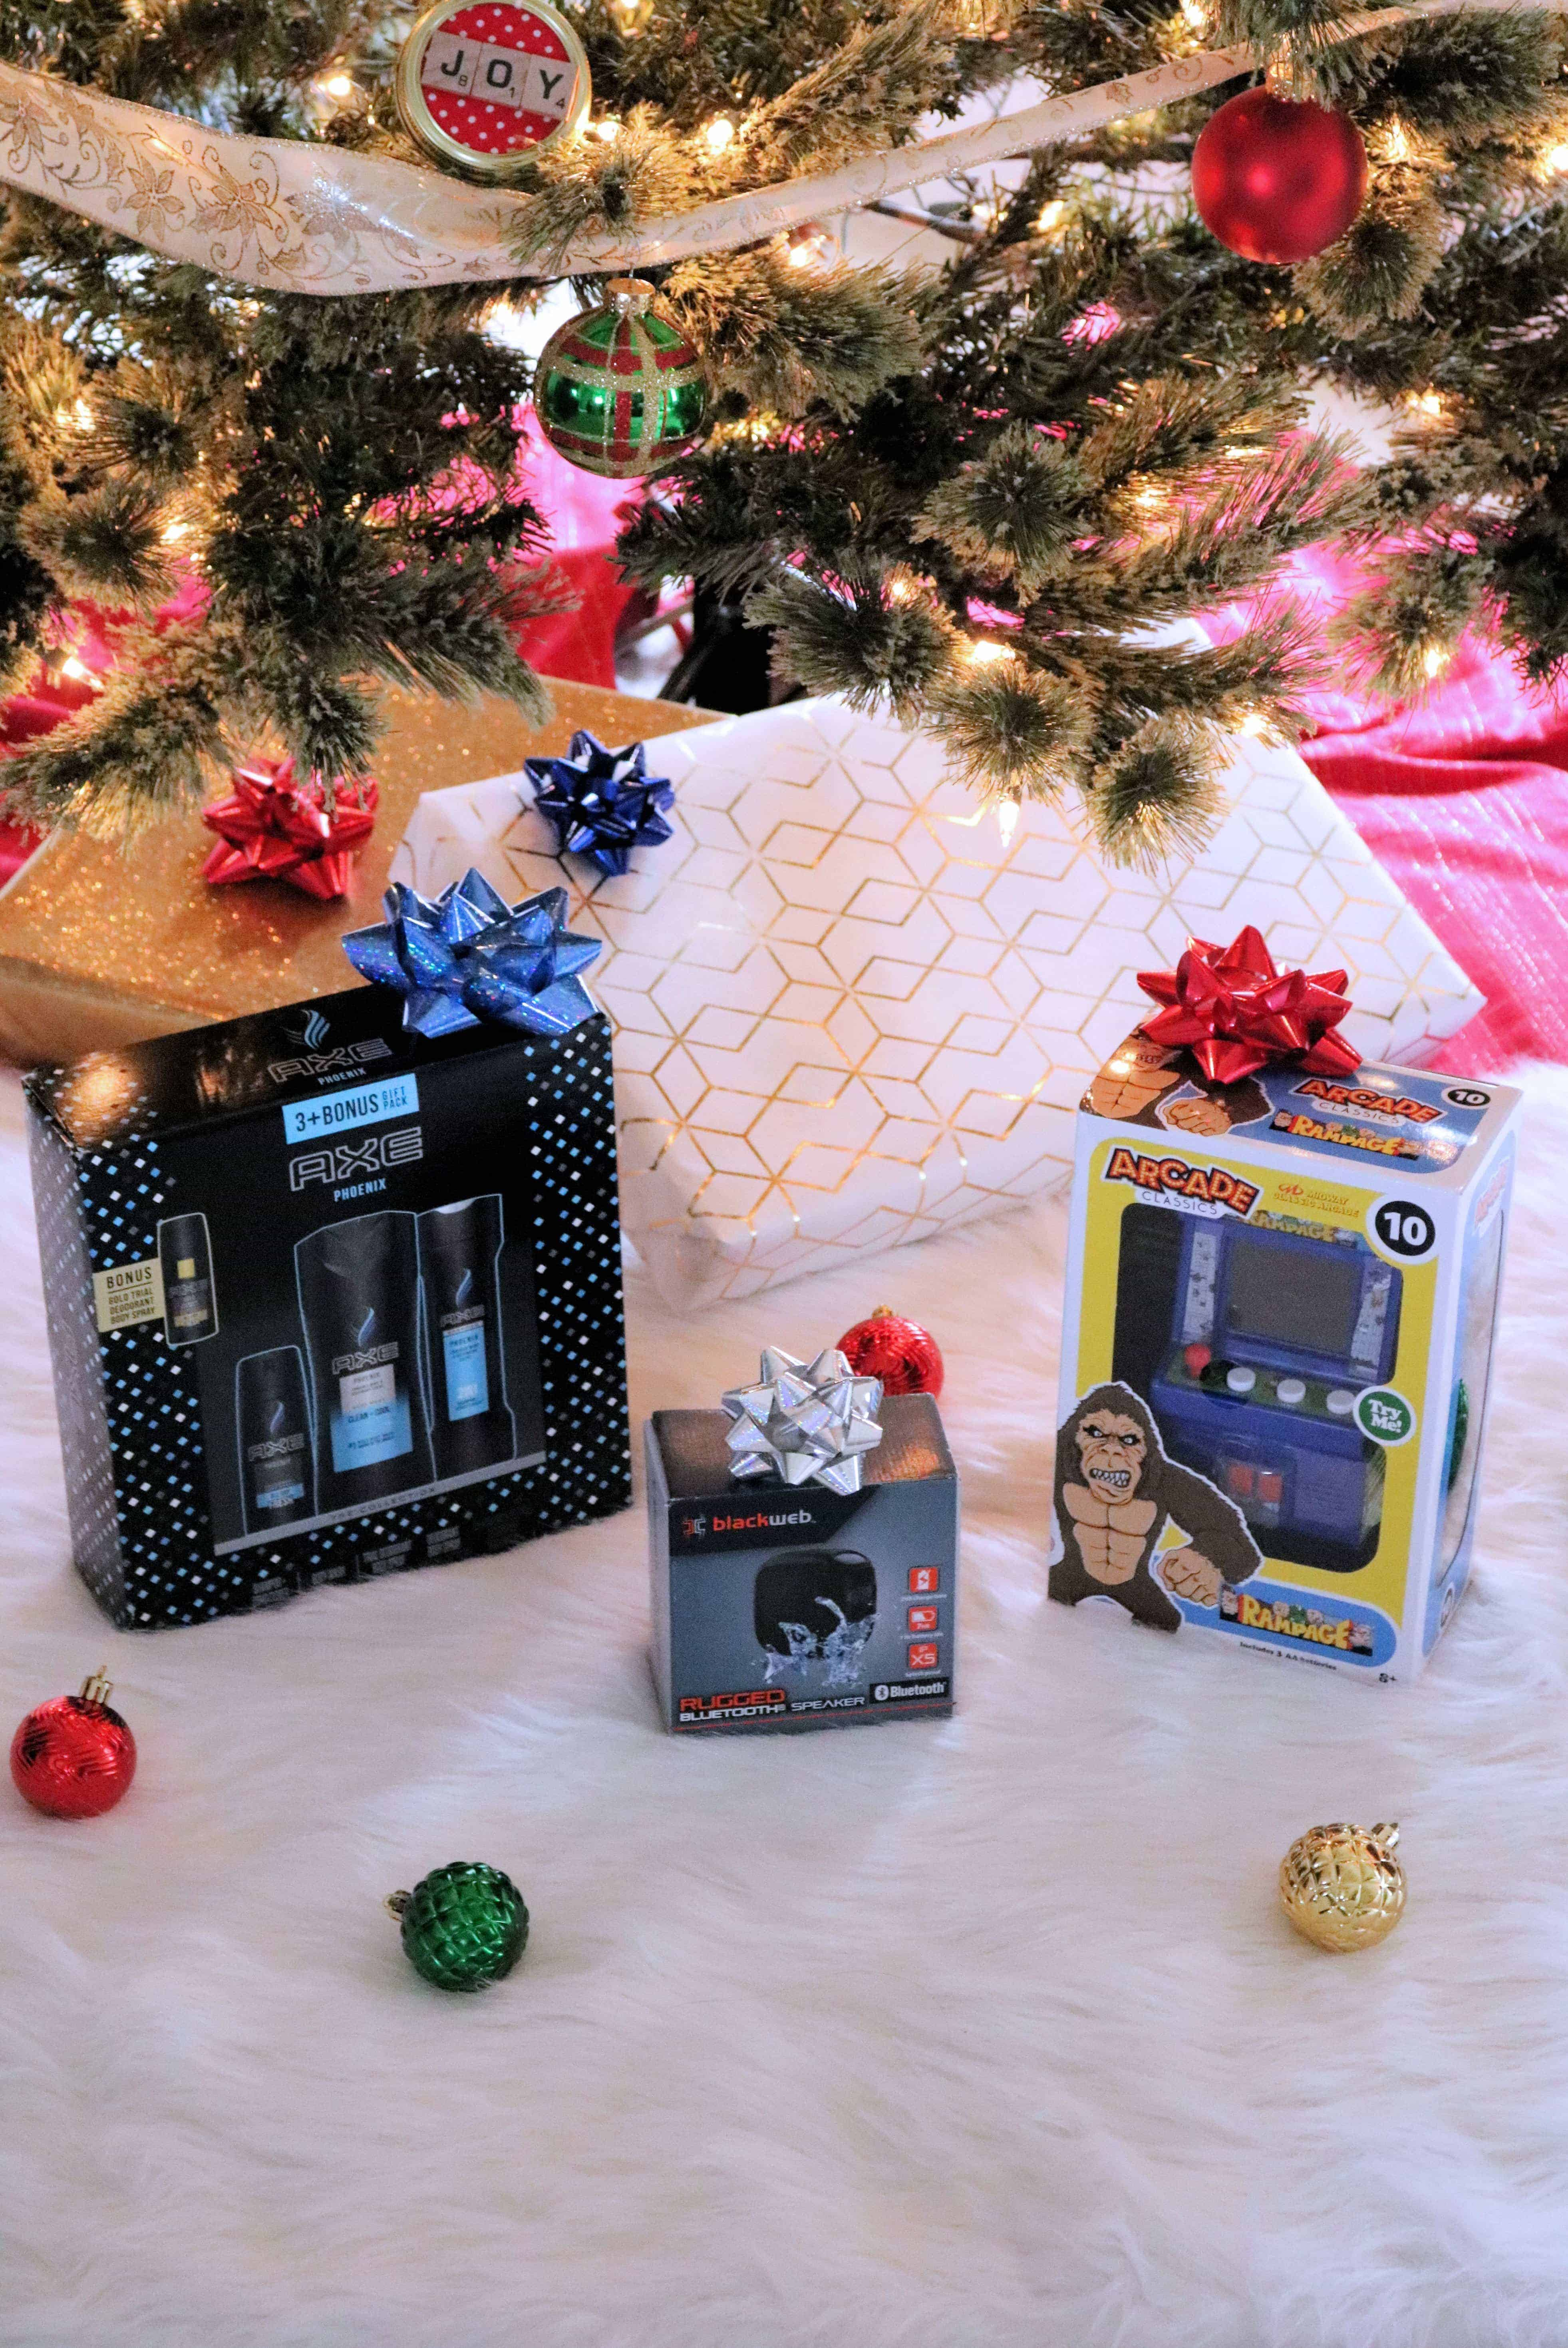 The Christmas countdown is on and Walmart has the top Christmas gifts this year that everyone will love to receive! Whether you're looking for gifts for her, gifts for him, or last-minute gifts for the kids, this list has the hottest Must-Have Walmart Christmas Gifts Under $25! #sponsored #WalmartTopGifts #christmasgifts #giftsunder25